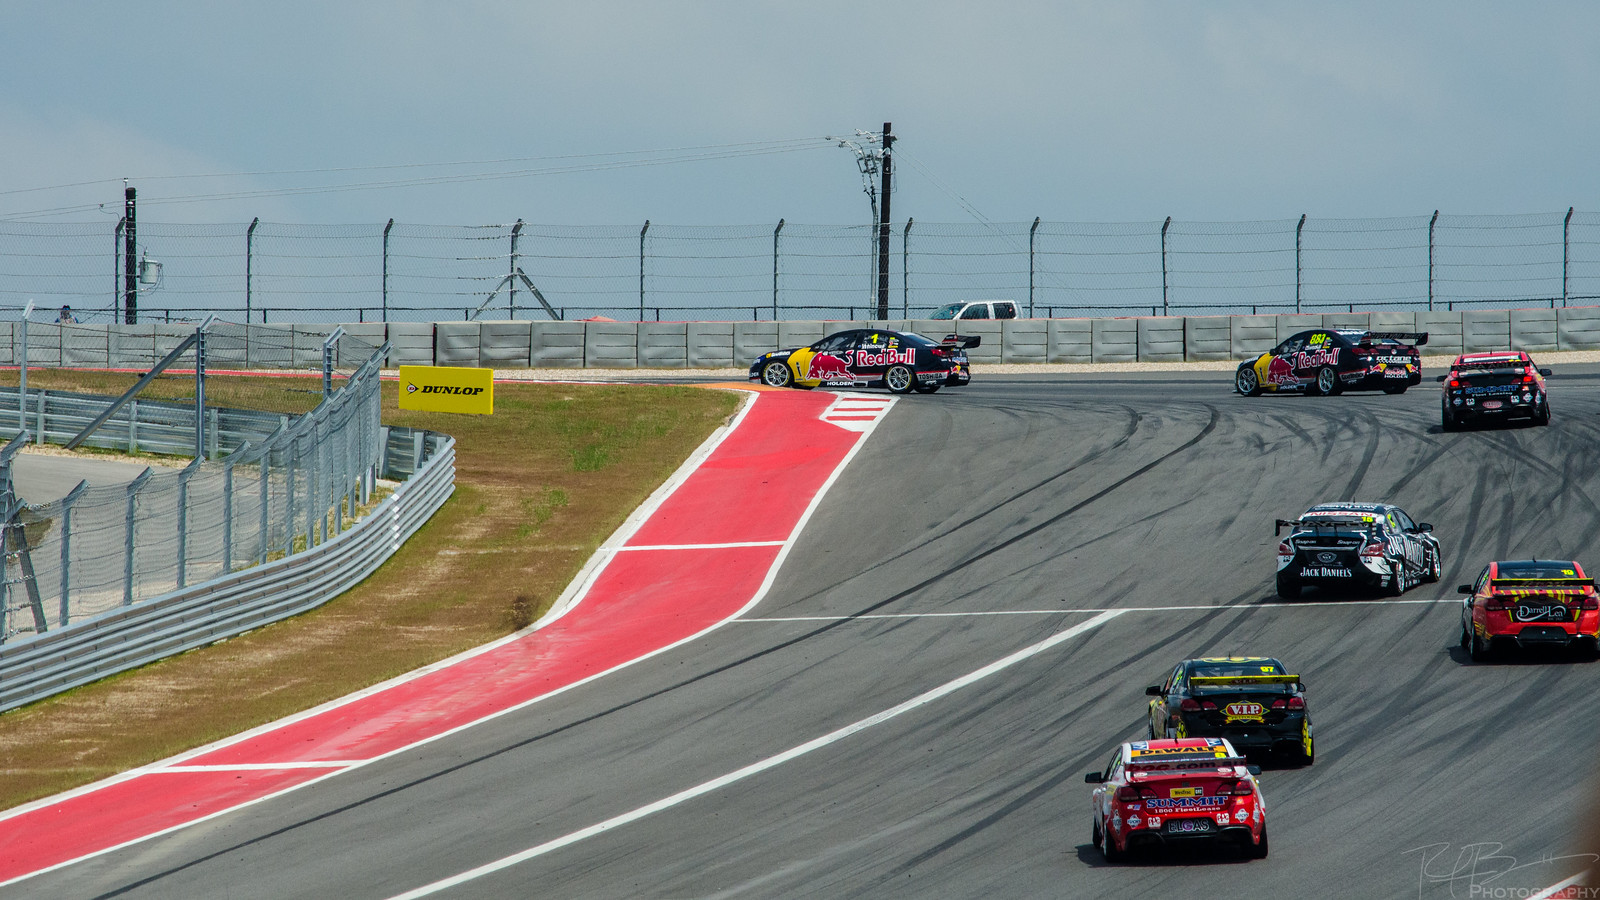 Into Turn 1